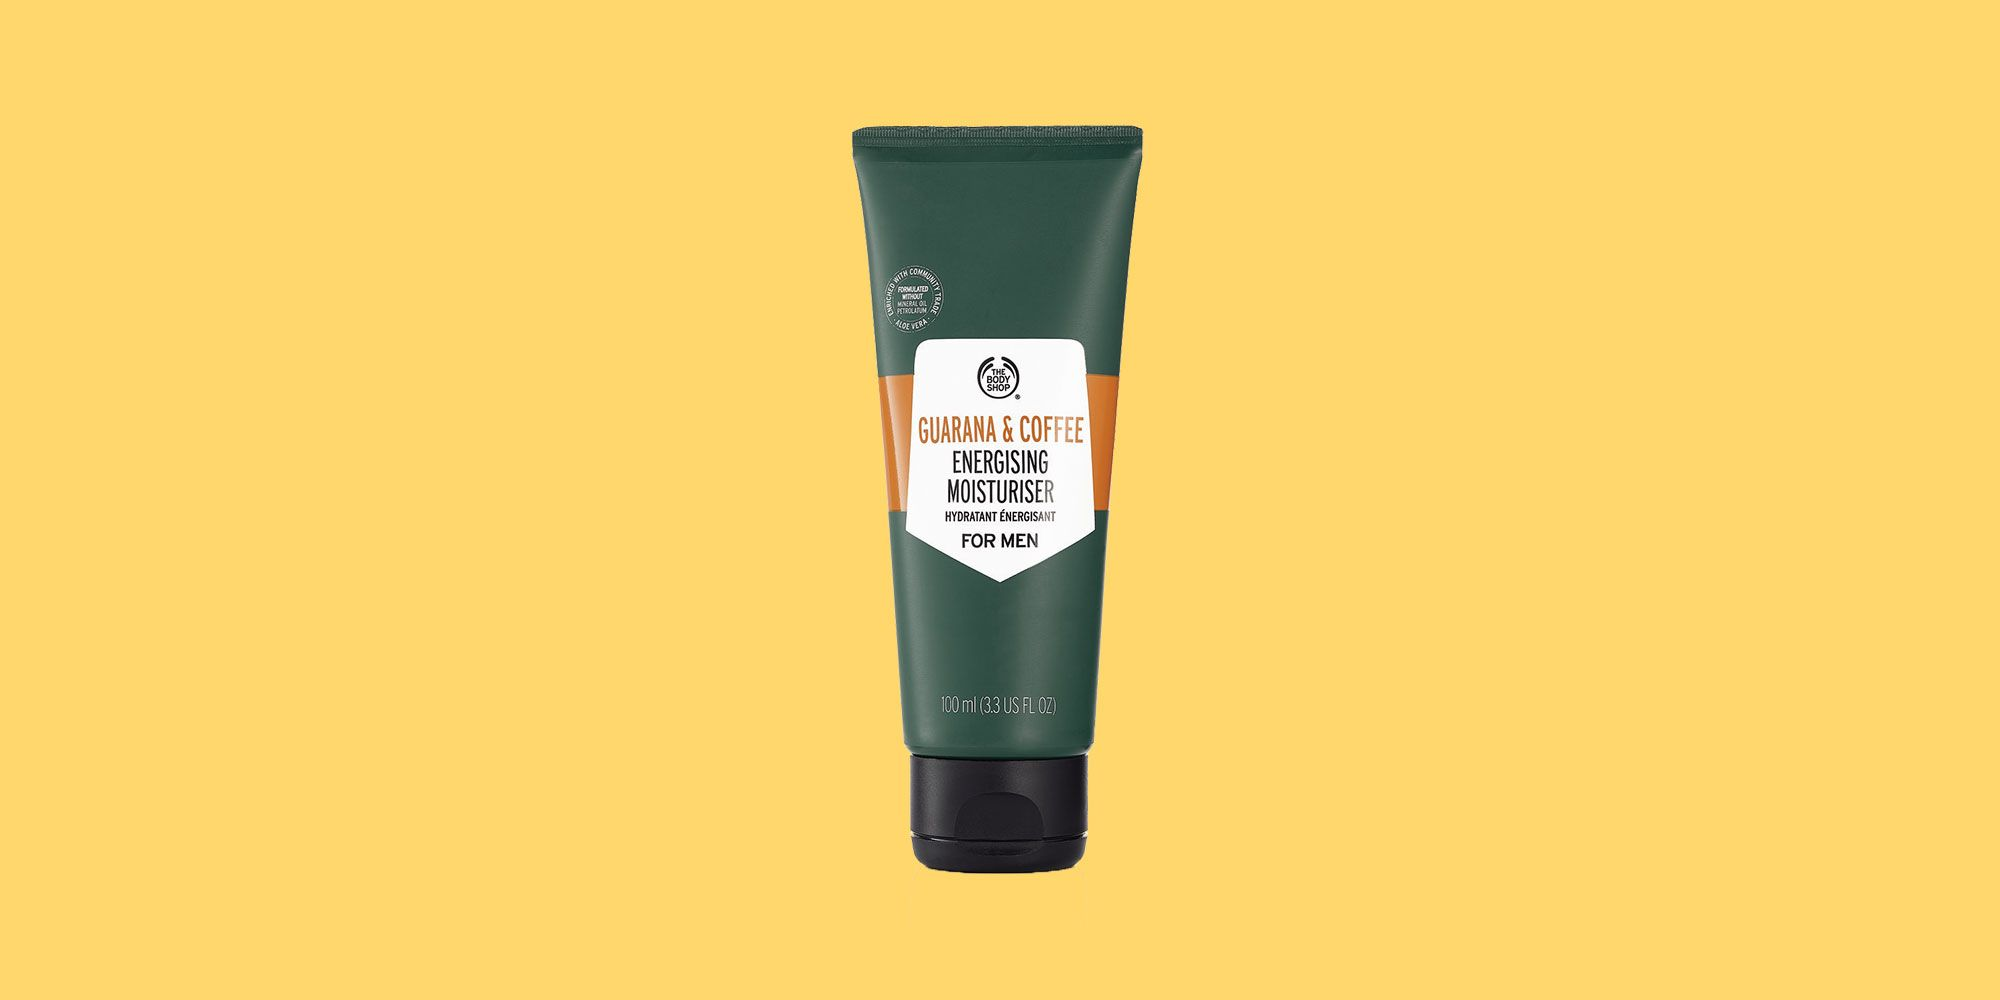 The Body Shop Guarana And Coffee Energising Moisturiser For Men Review